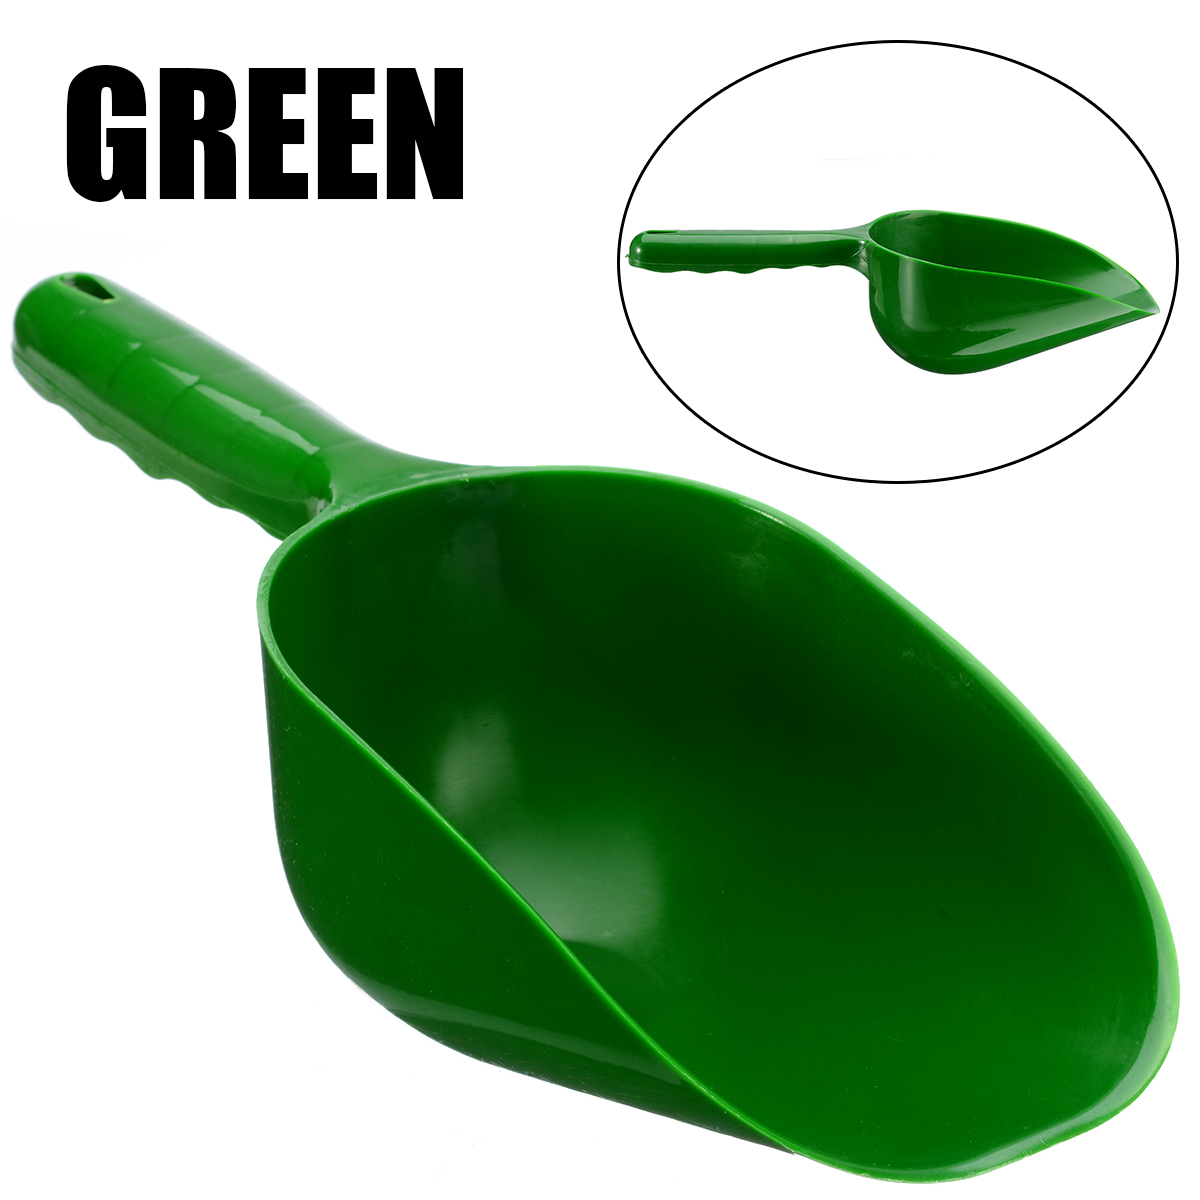 Plastic Garden Scoop Multi-function Soil Shovel Spoons Digging Tool Cultivation